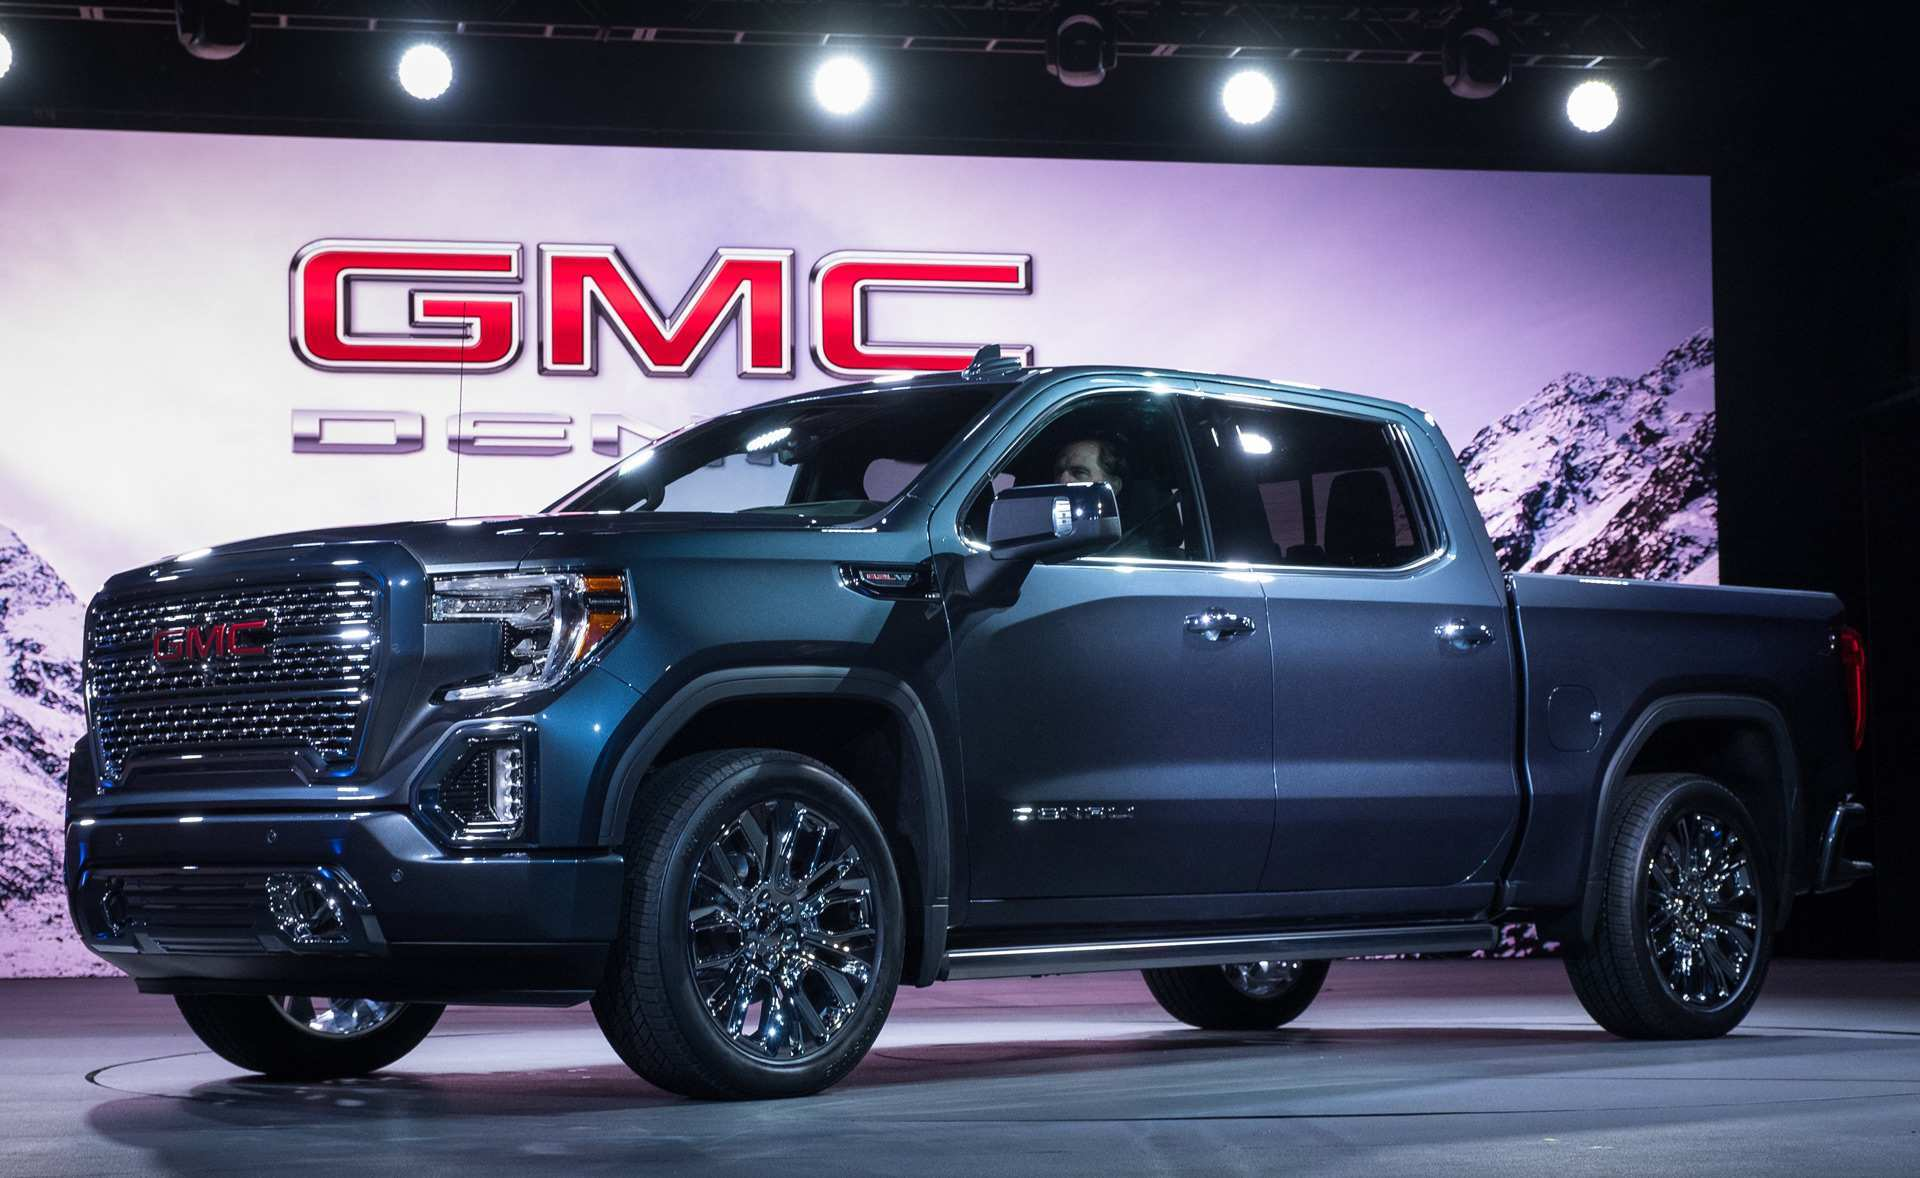 79 Concept of 2020 Gmc Sierra Concept Pictures for 2020 Gmc Sierra Concept